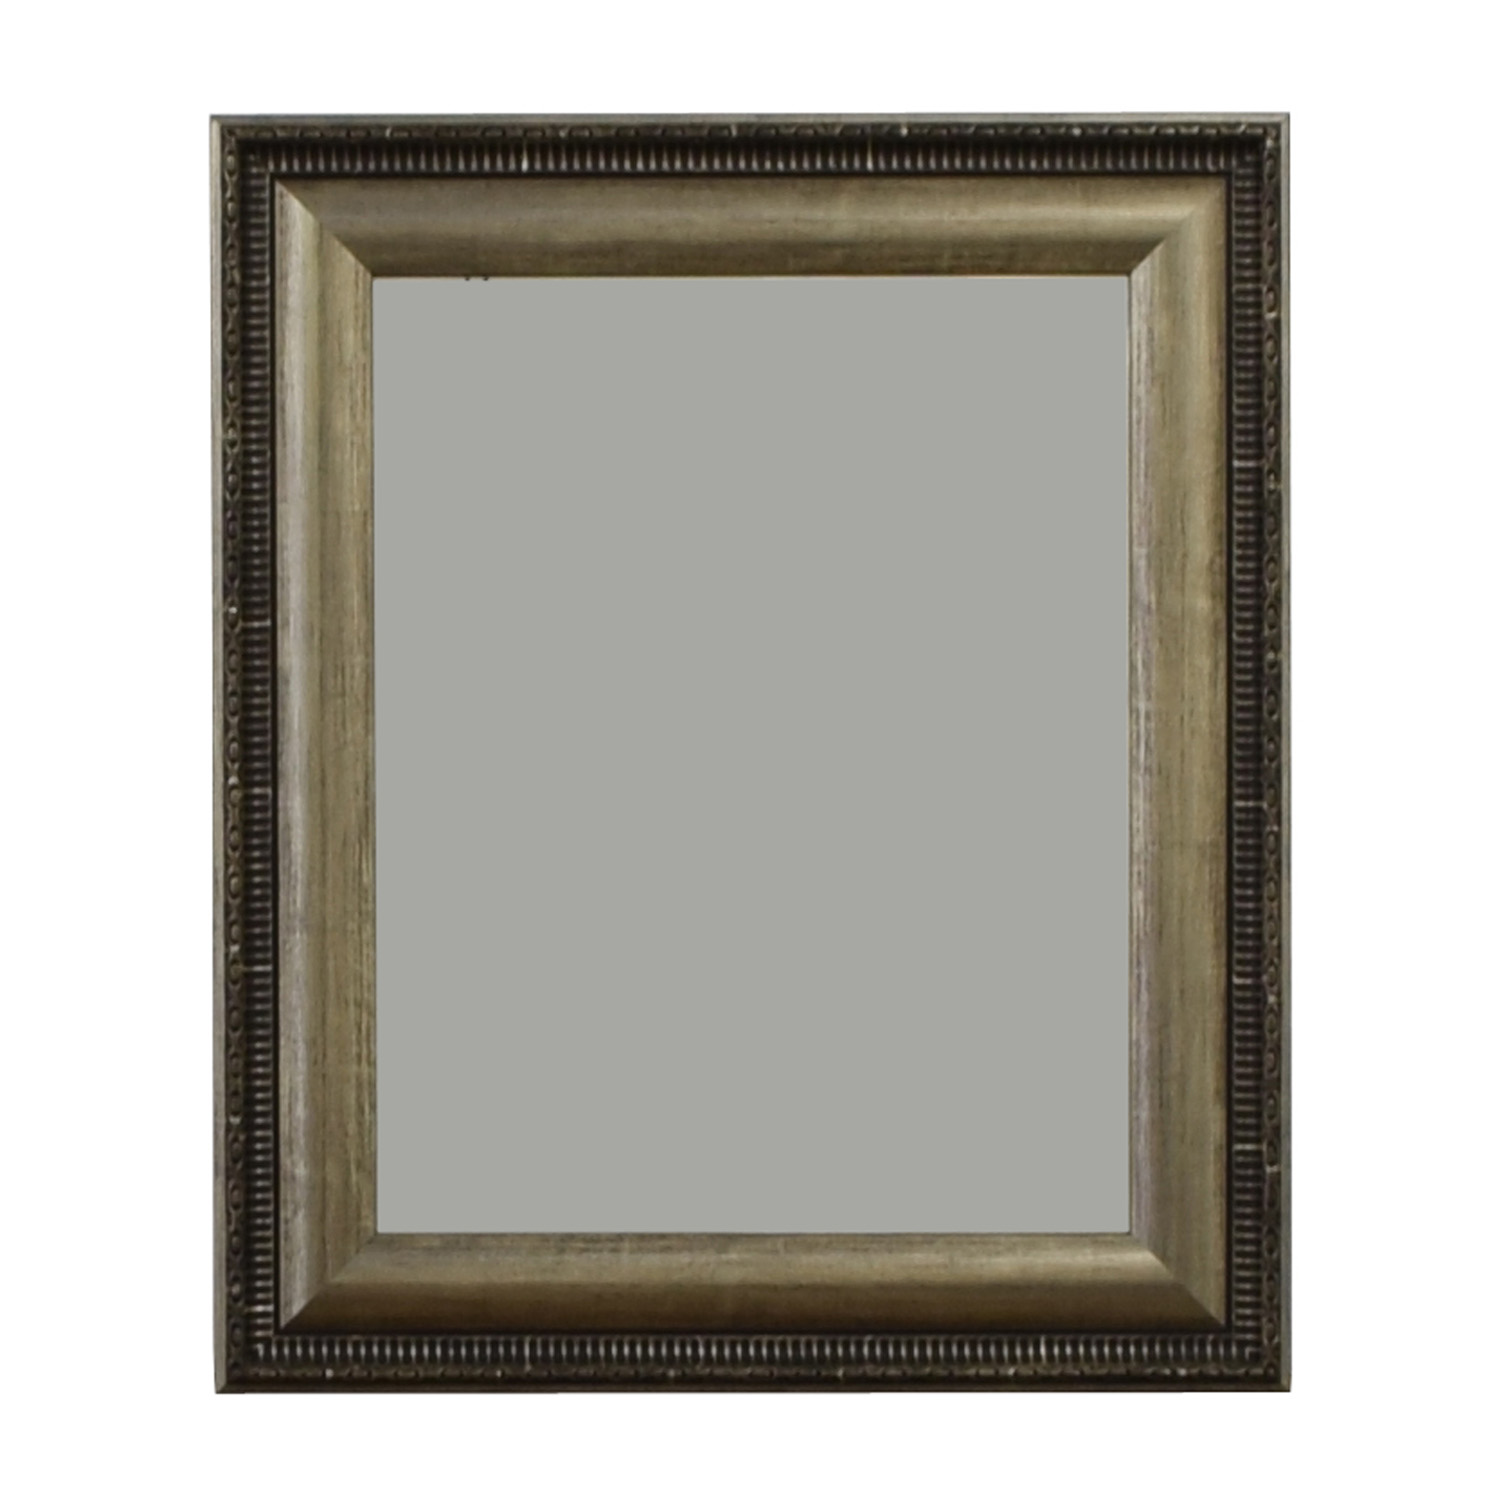 Silver Framed Wall Mirror / Mirrors